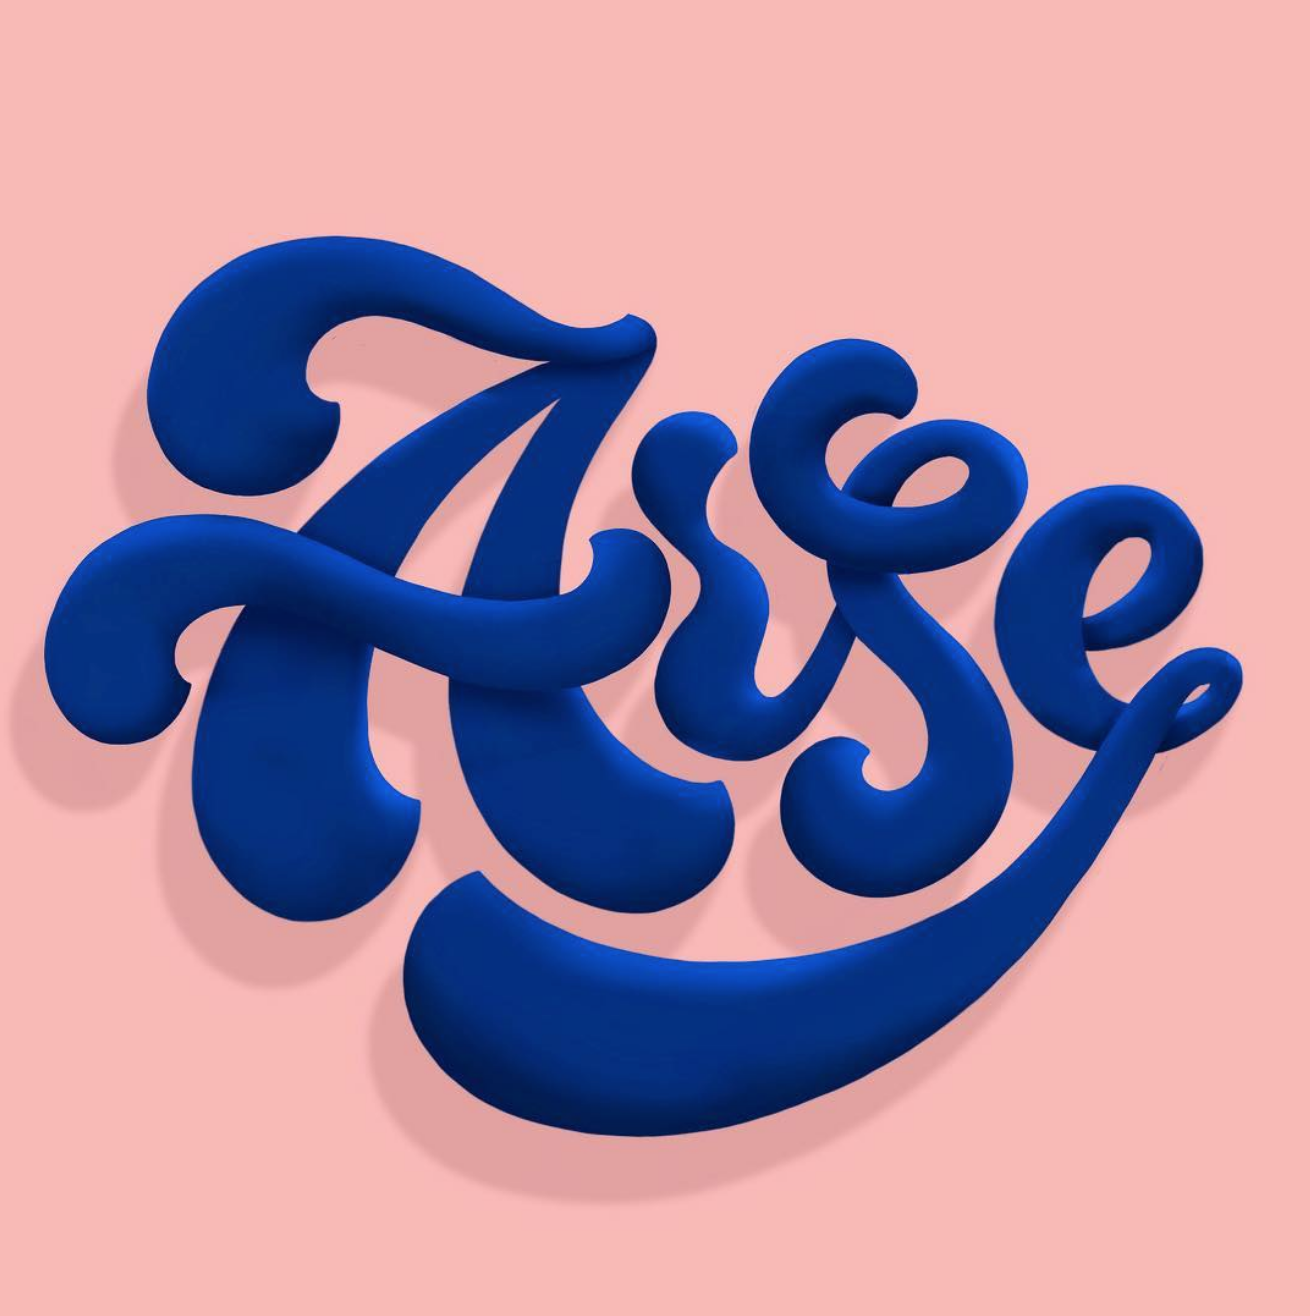 RJP_3D_Arse.png